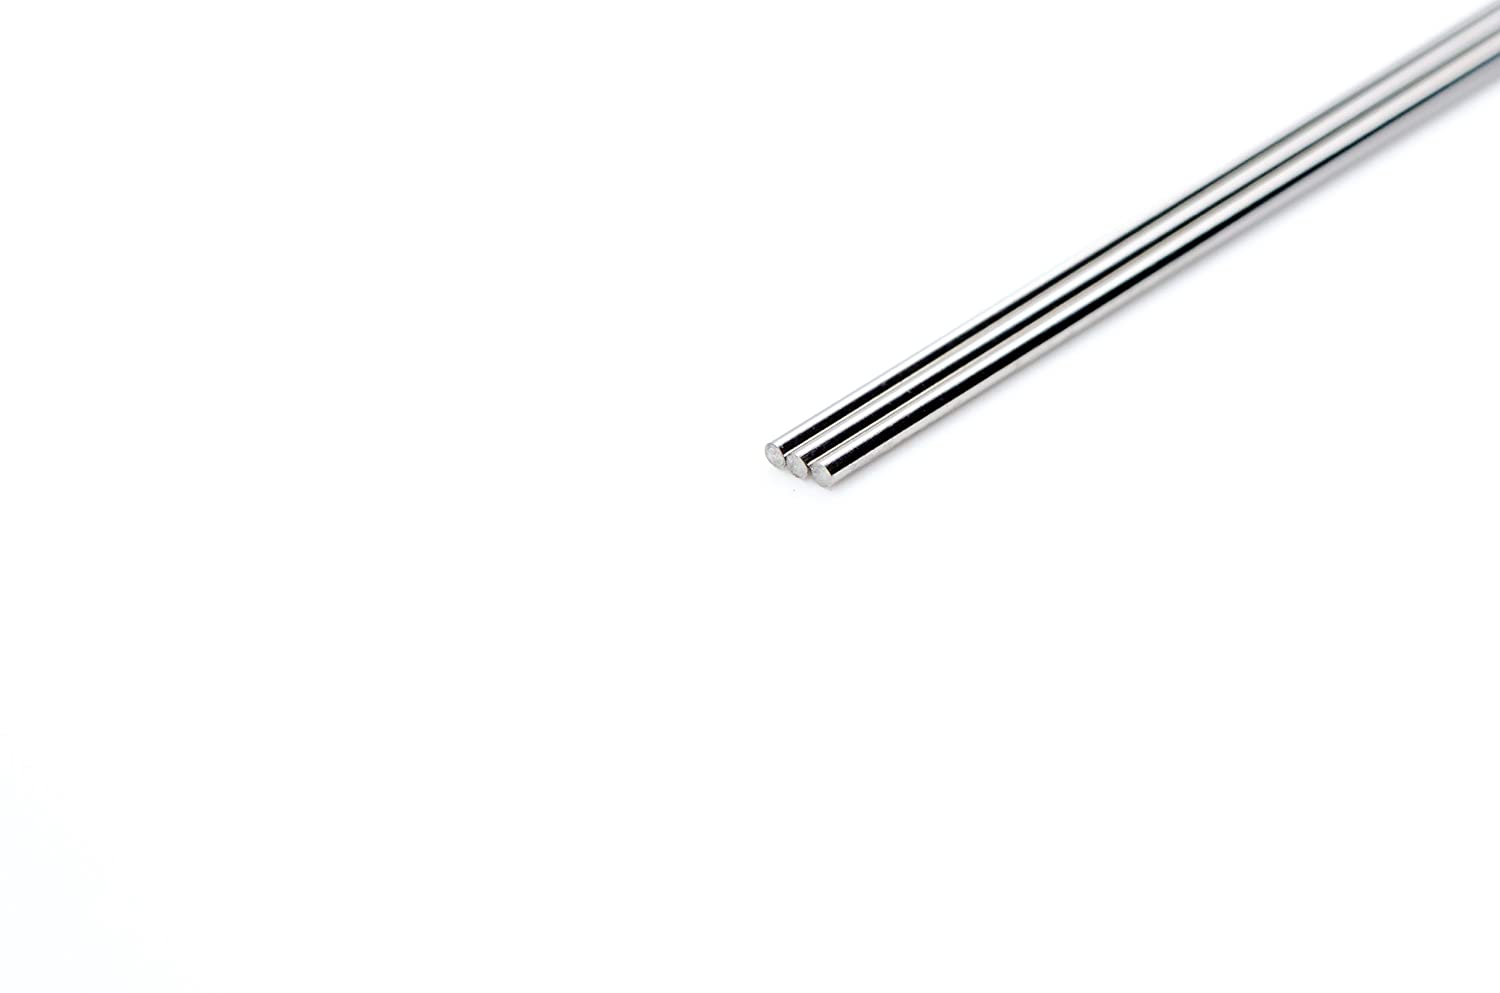 ASTM A313 73 Length Pack of 5 Bright Finish Spring Temper WYTCH304-563 304 Stainless Steel Wire Pack of 5 0.126 Diameter Precision Tolerance 0.126 Diameter 73 Length Wytech